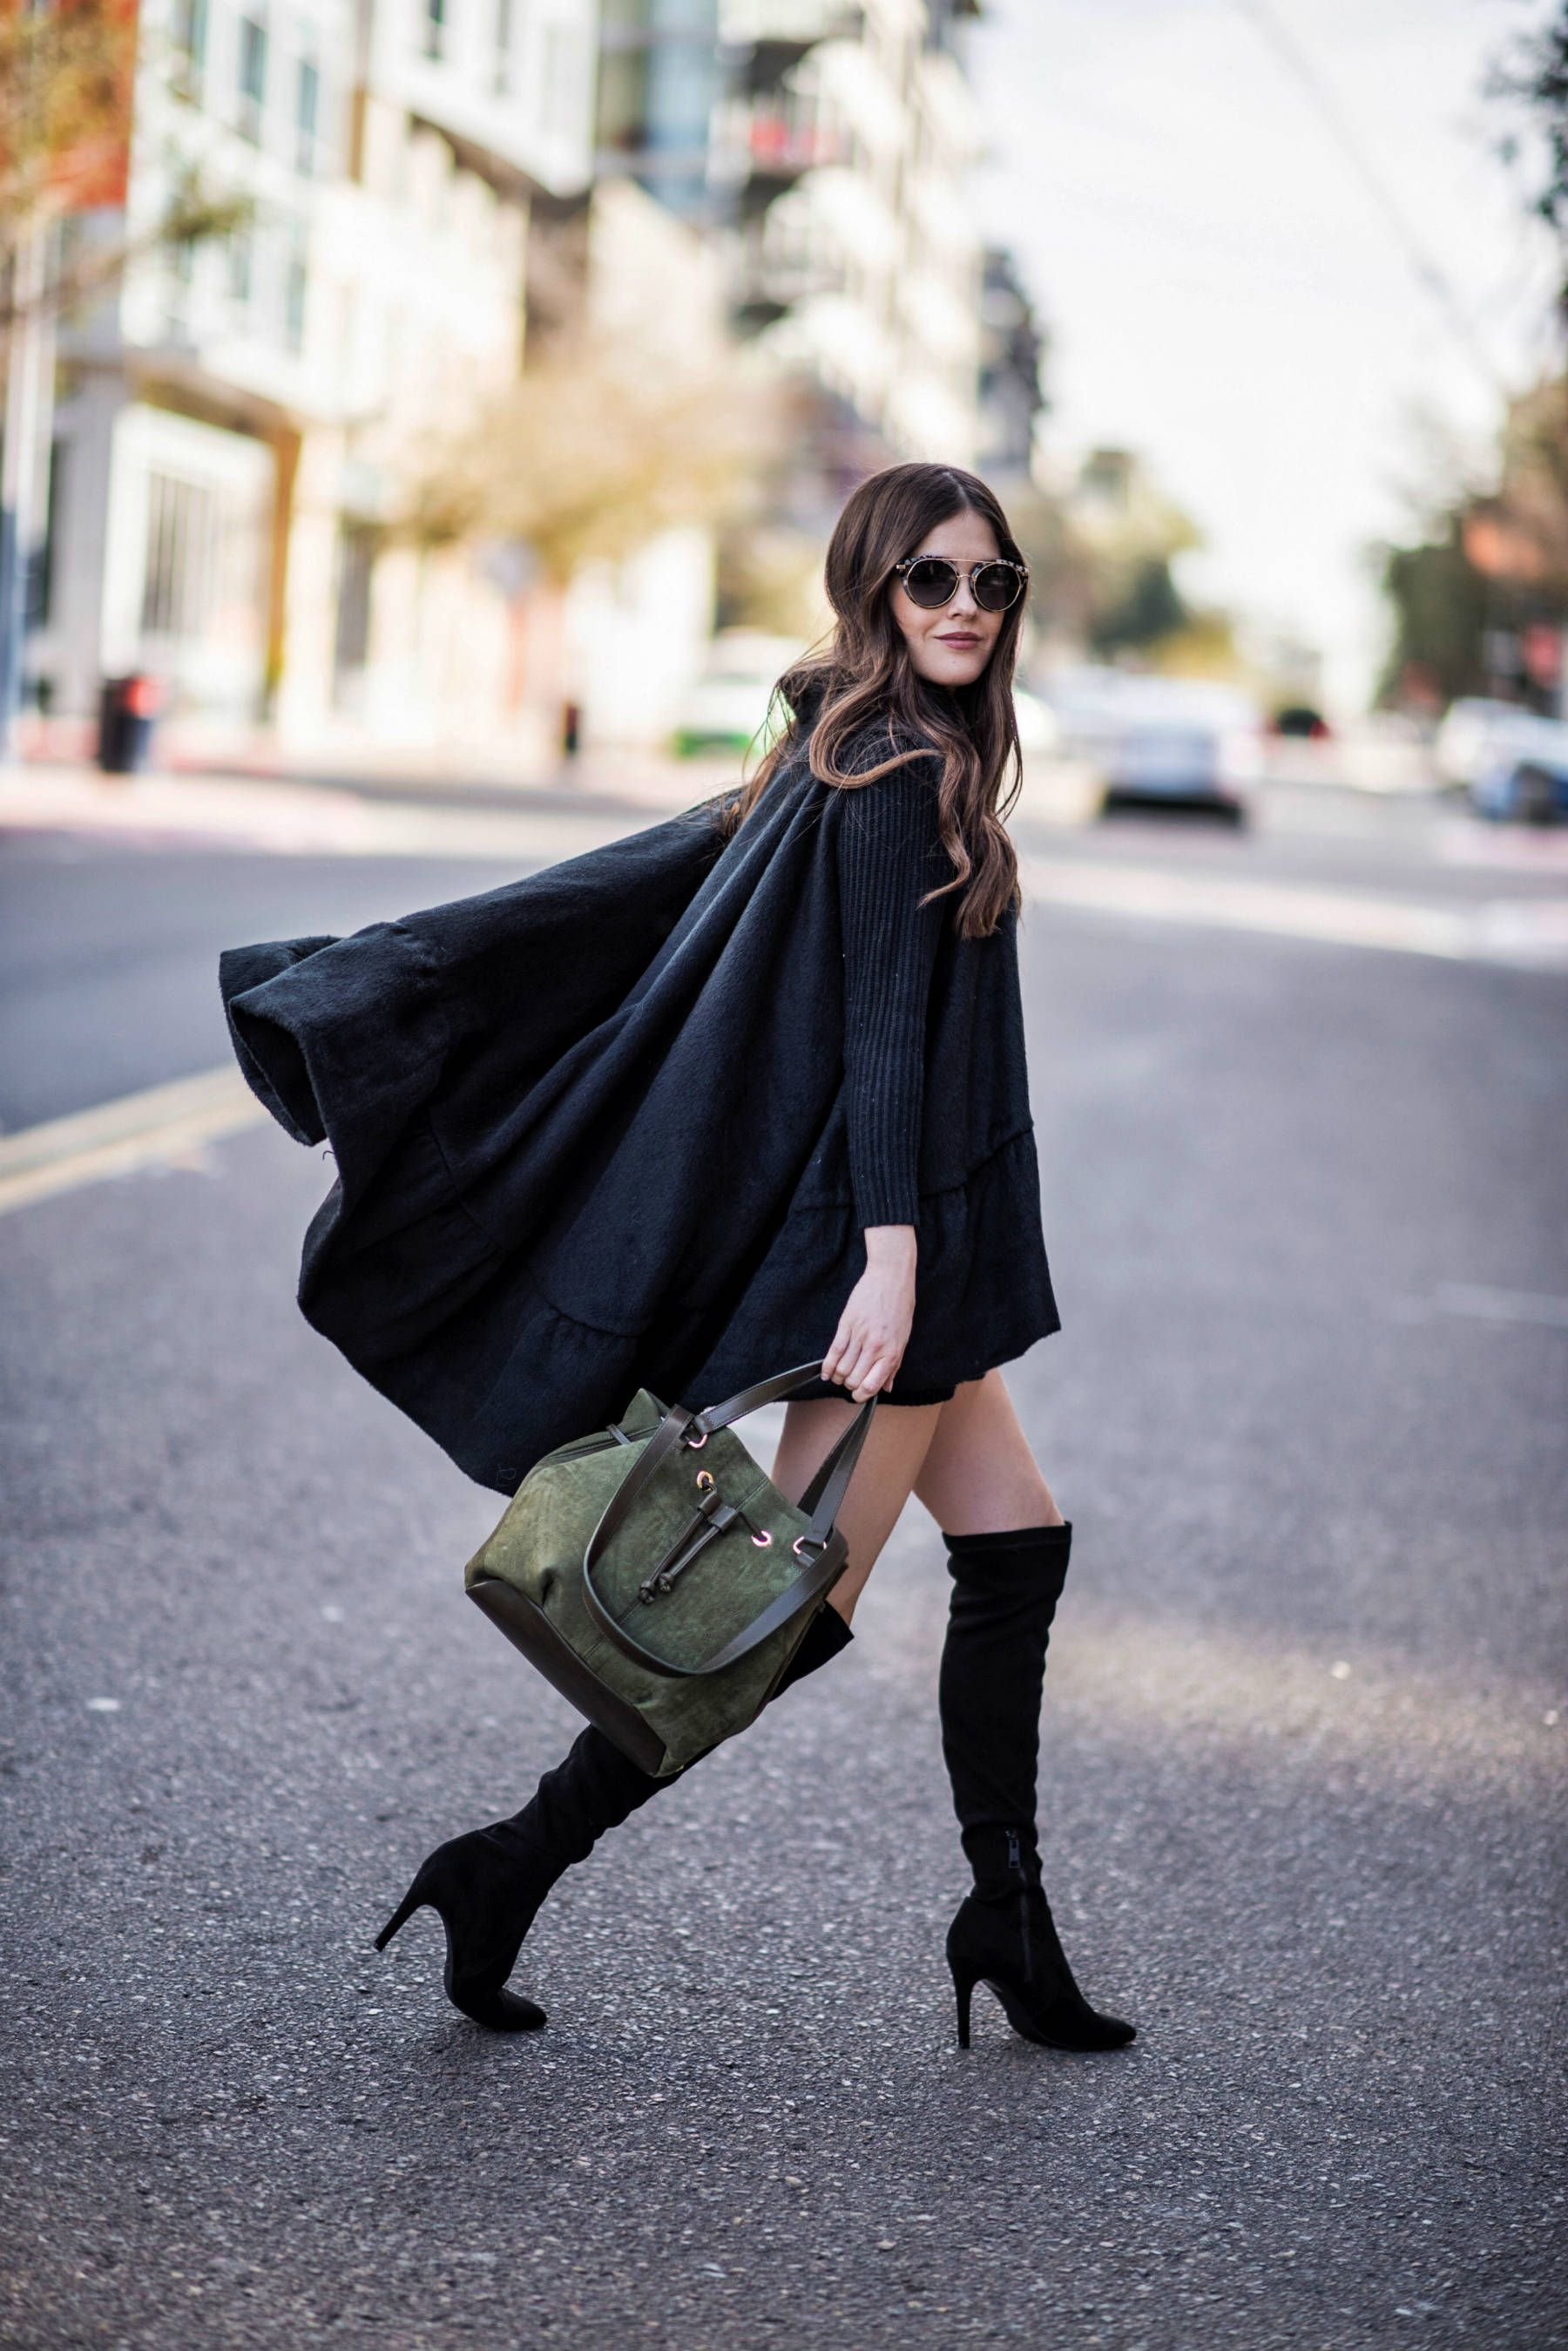 ec8748faa41c Can t get enough of over-the-knee boots this season! In my opinion